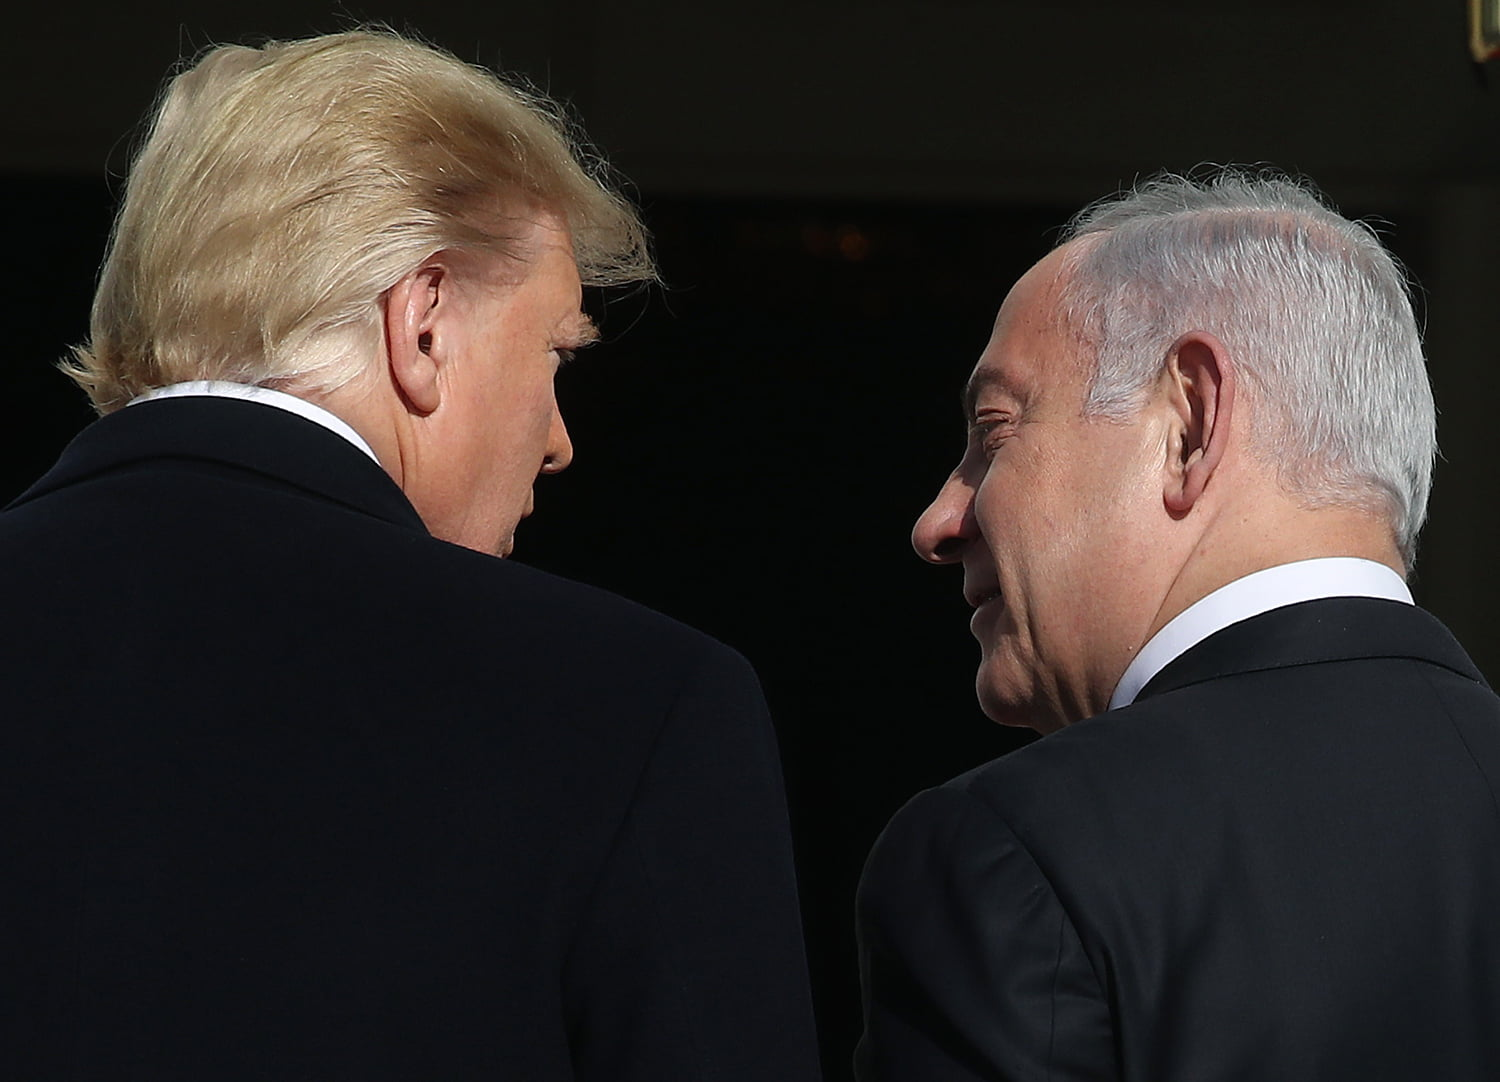 israel palestine peace plan - What Trump's Middle East Plan Means for Palestinians